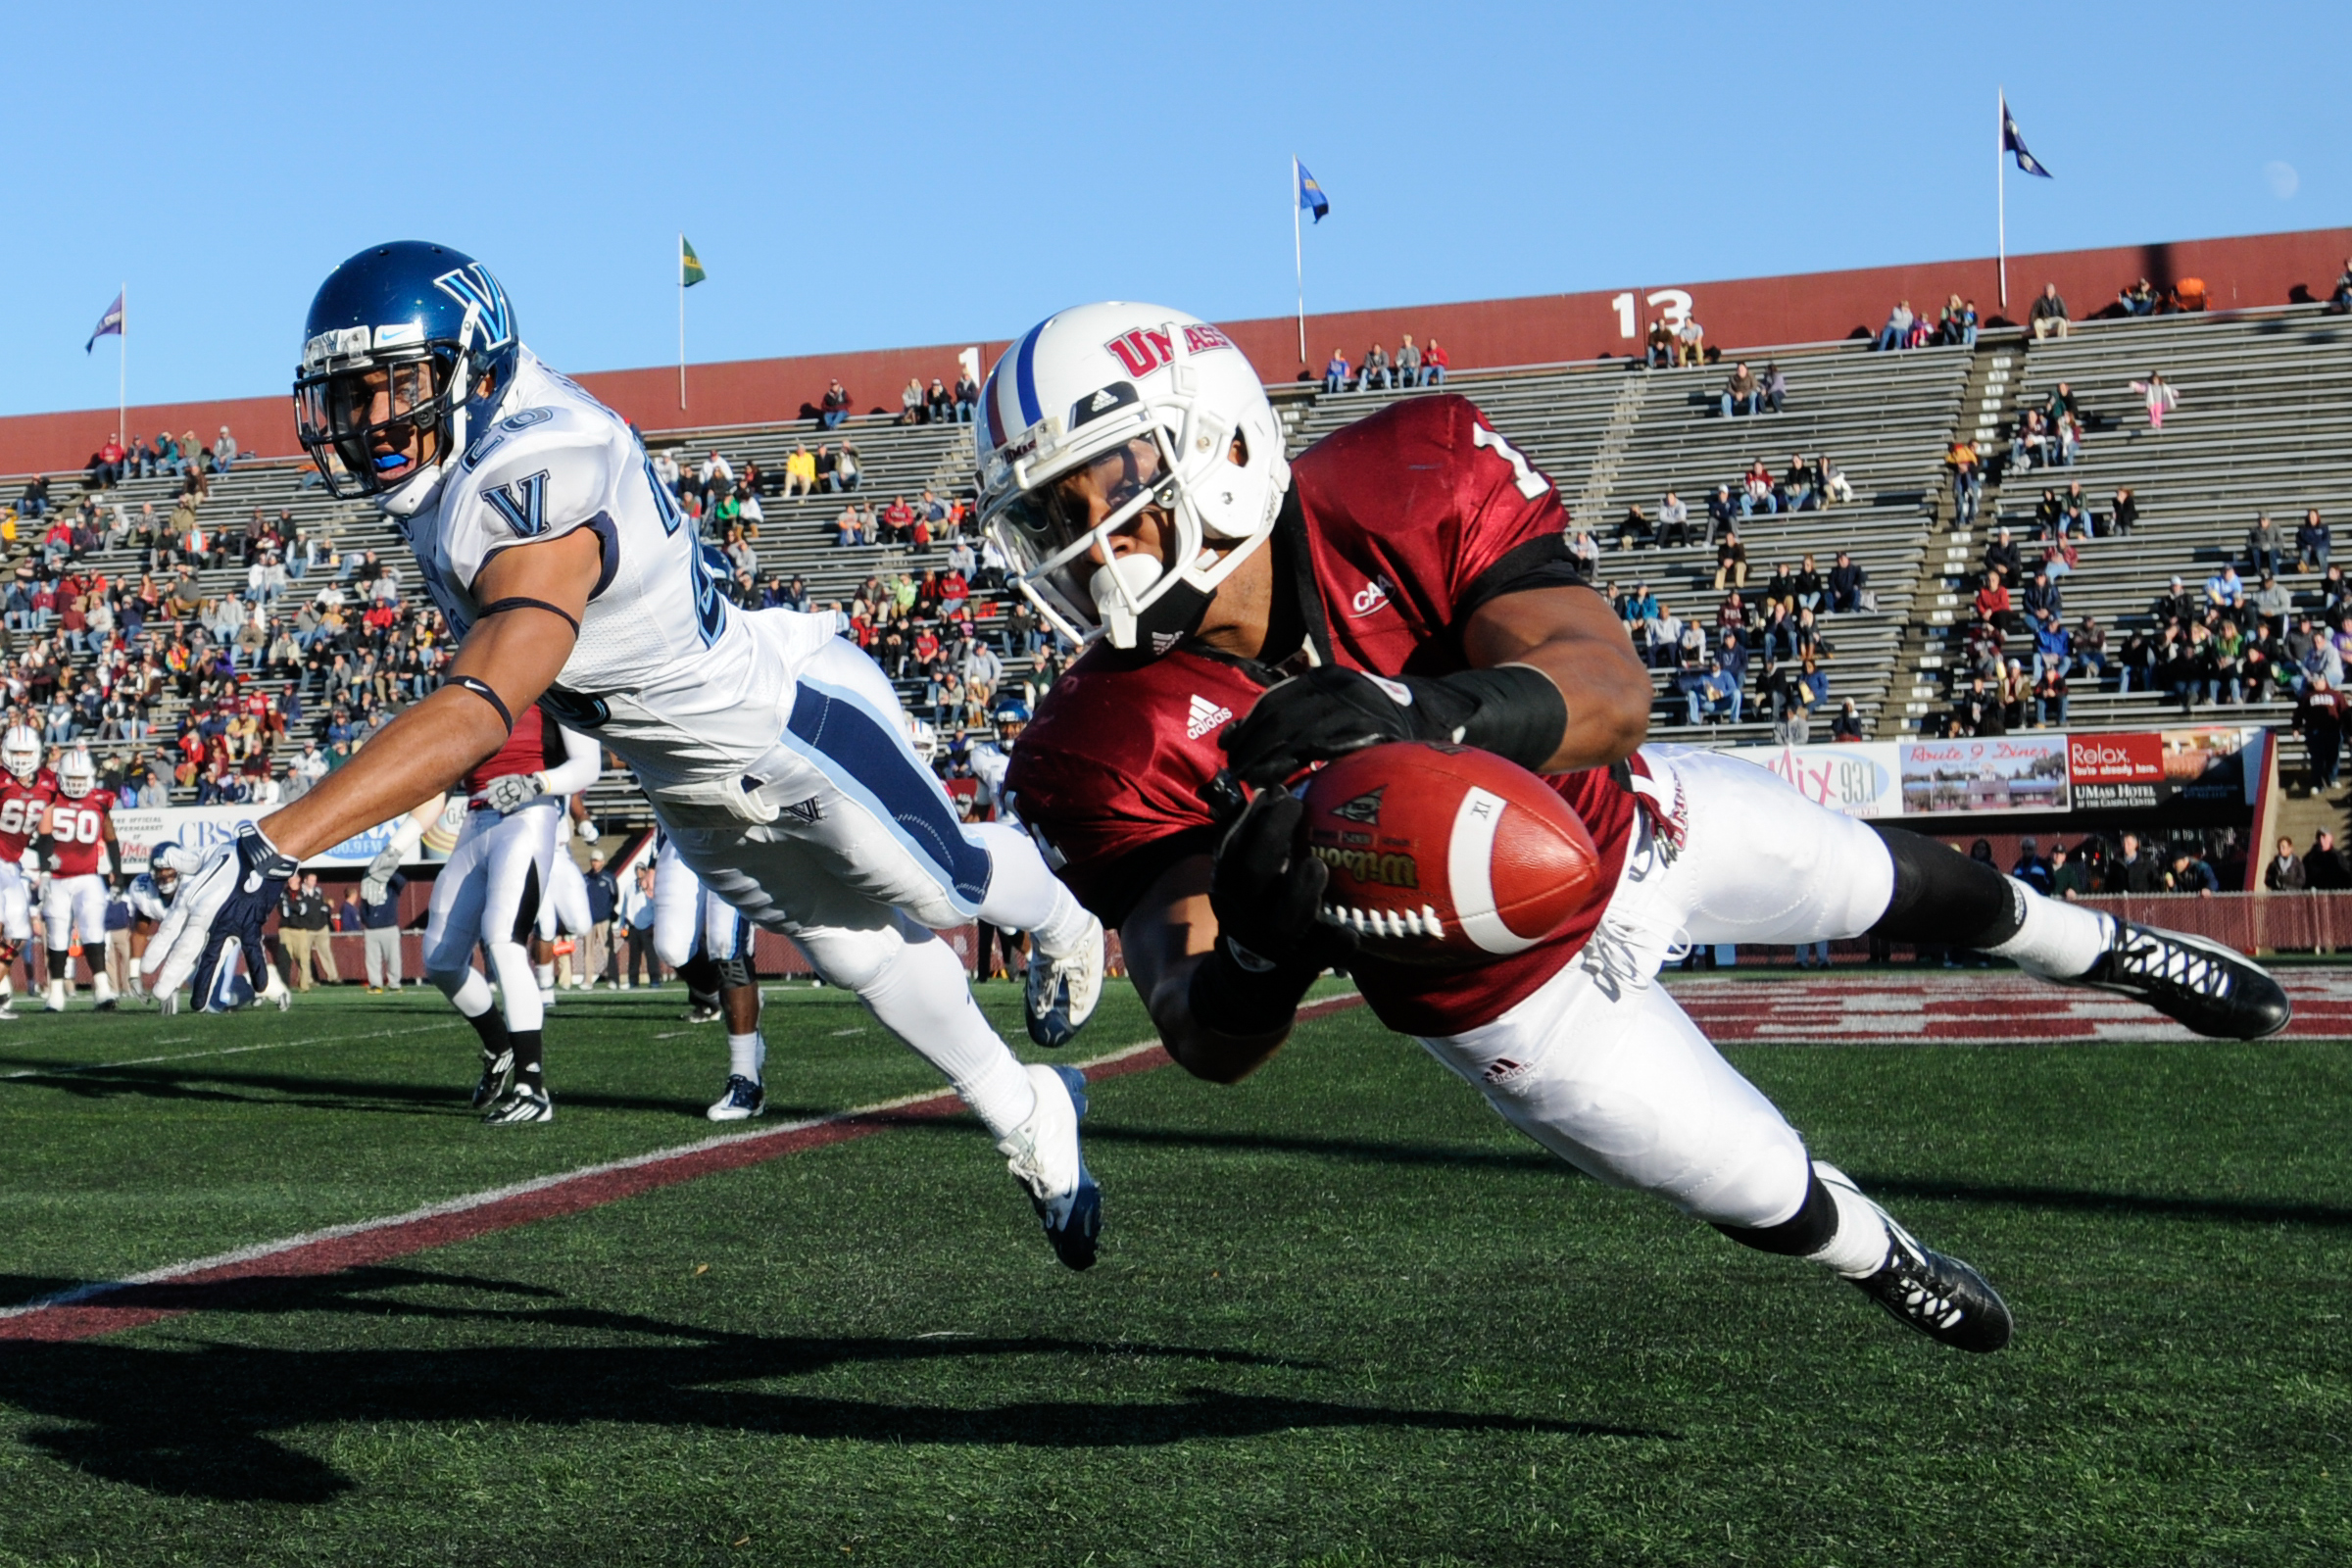 University of Massachusetts receiver Julian Talley beat defender Eric Loper but couldn't reel in the pass in the first half of a 35-17 loss to Villanova at McGuirk Stadium in Amherst, Mass. on Saturday, November 5, 2011.